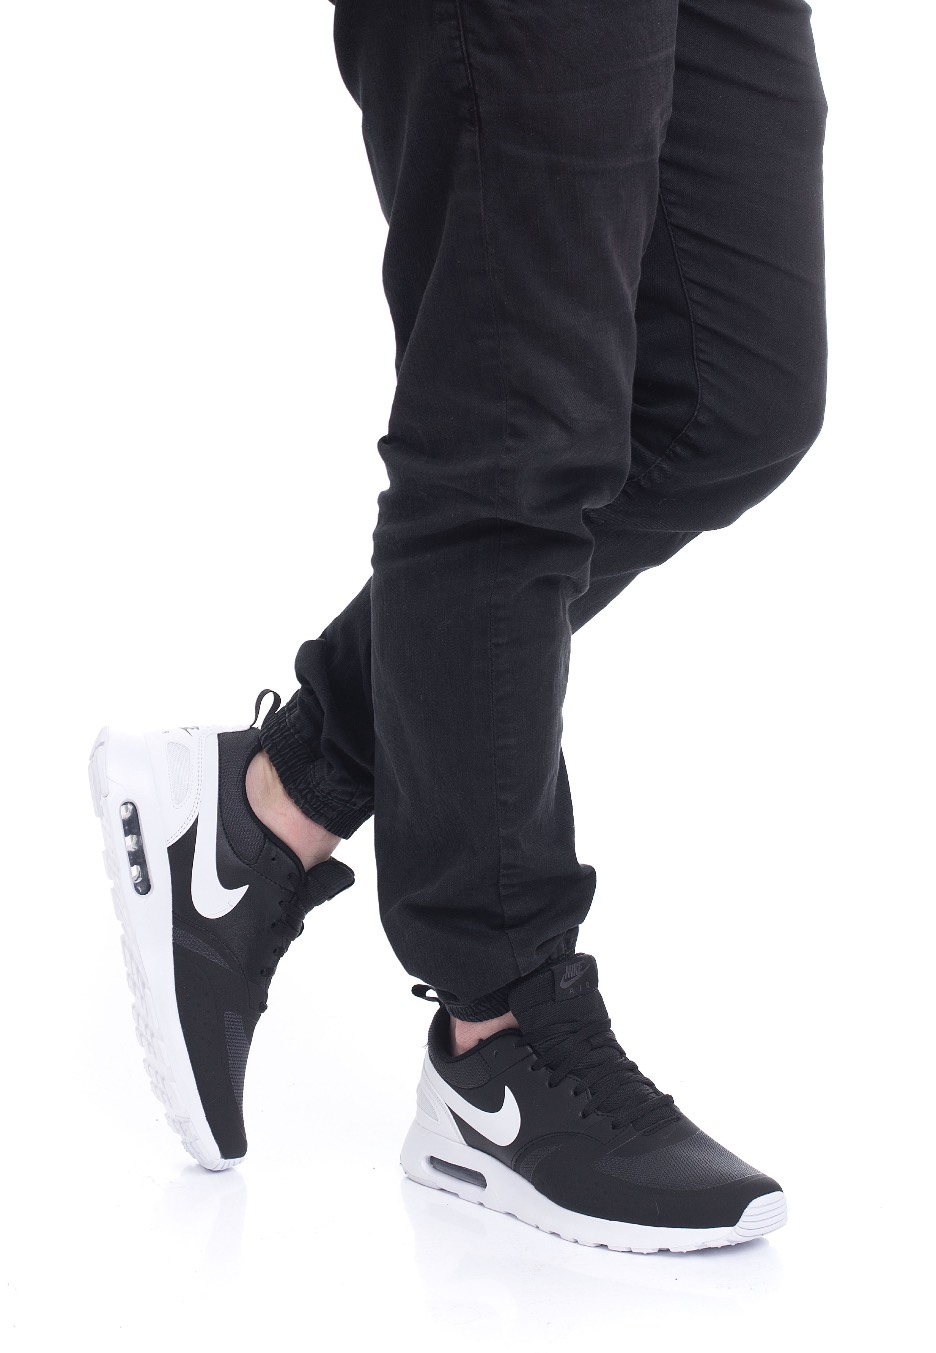 Nike - Air Max Vision Black/White/Anthracite - Shoes - Impericon ...